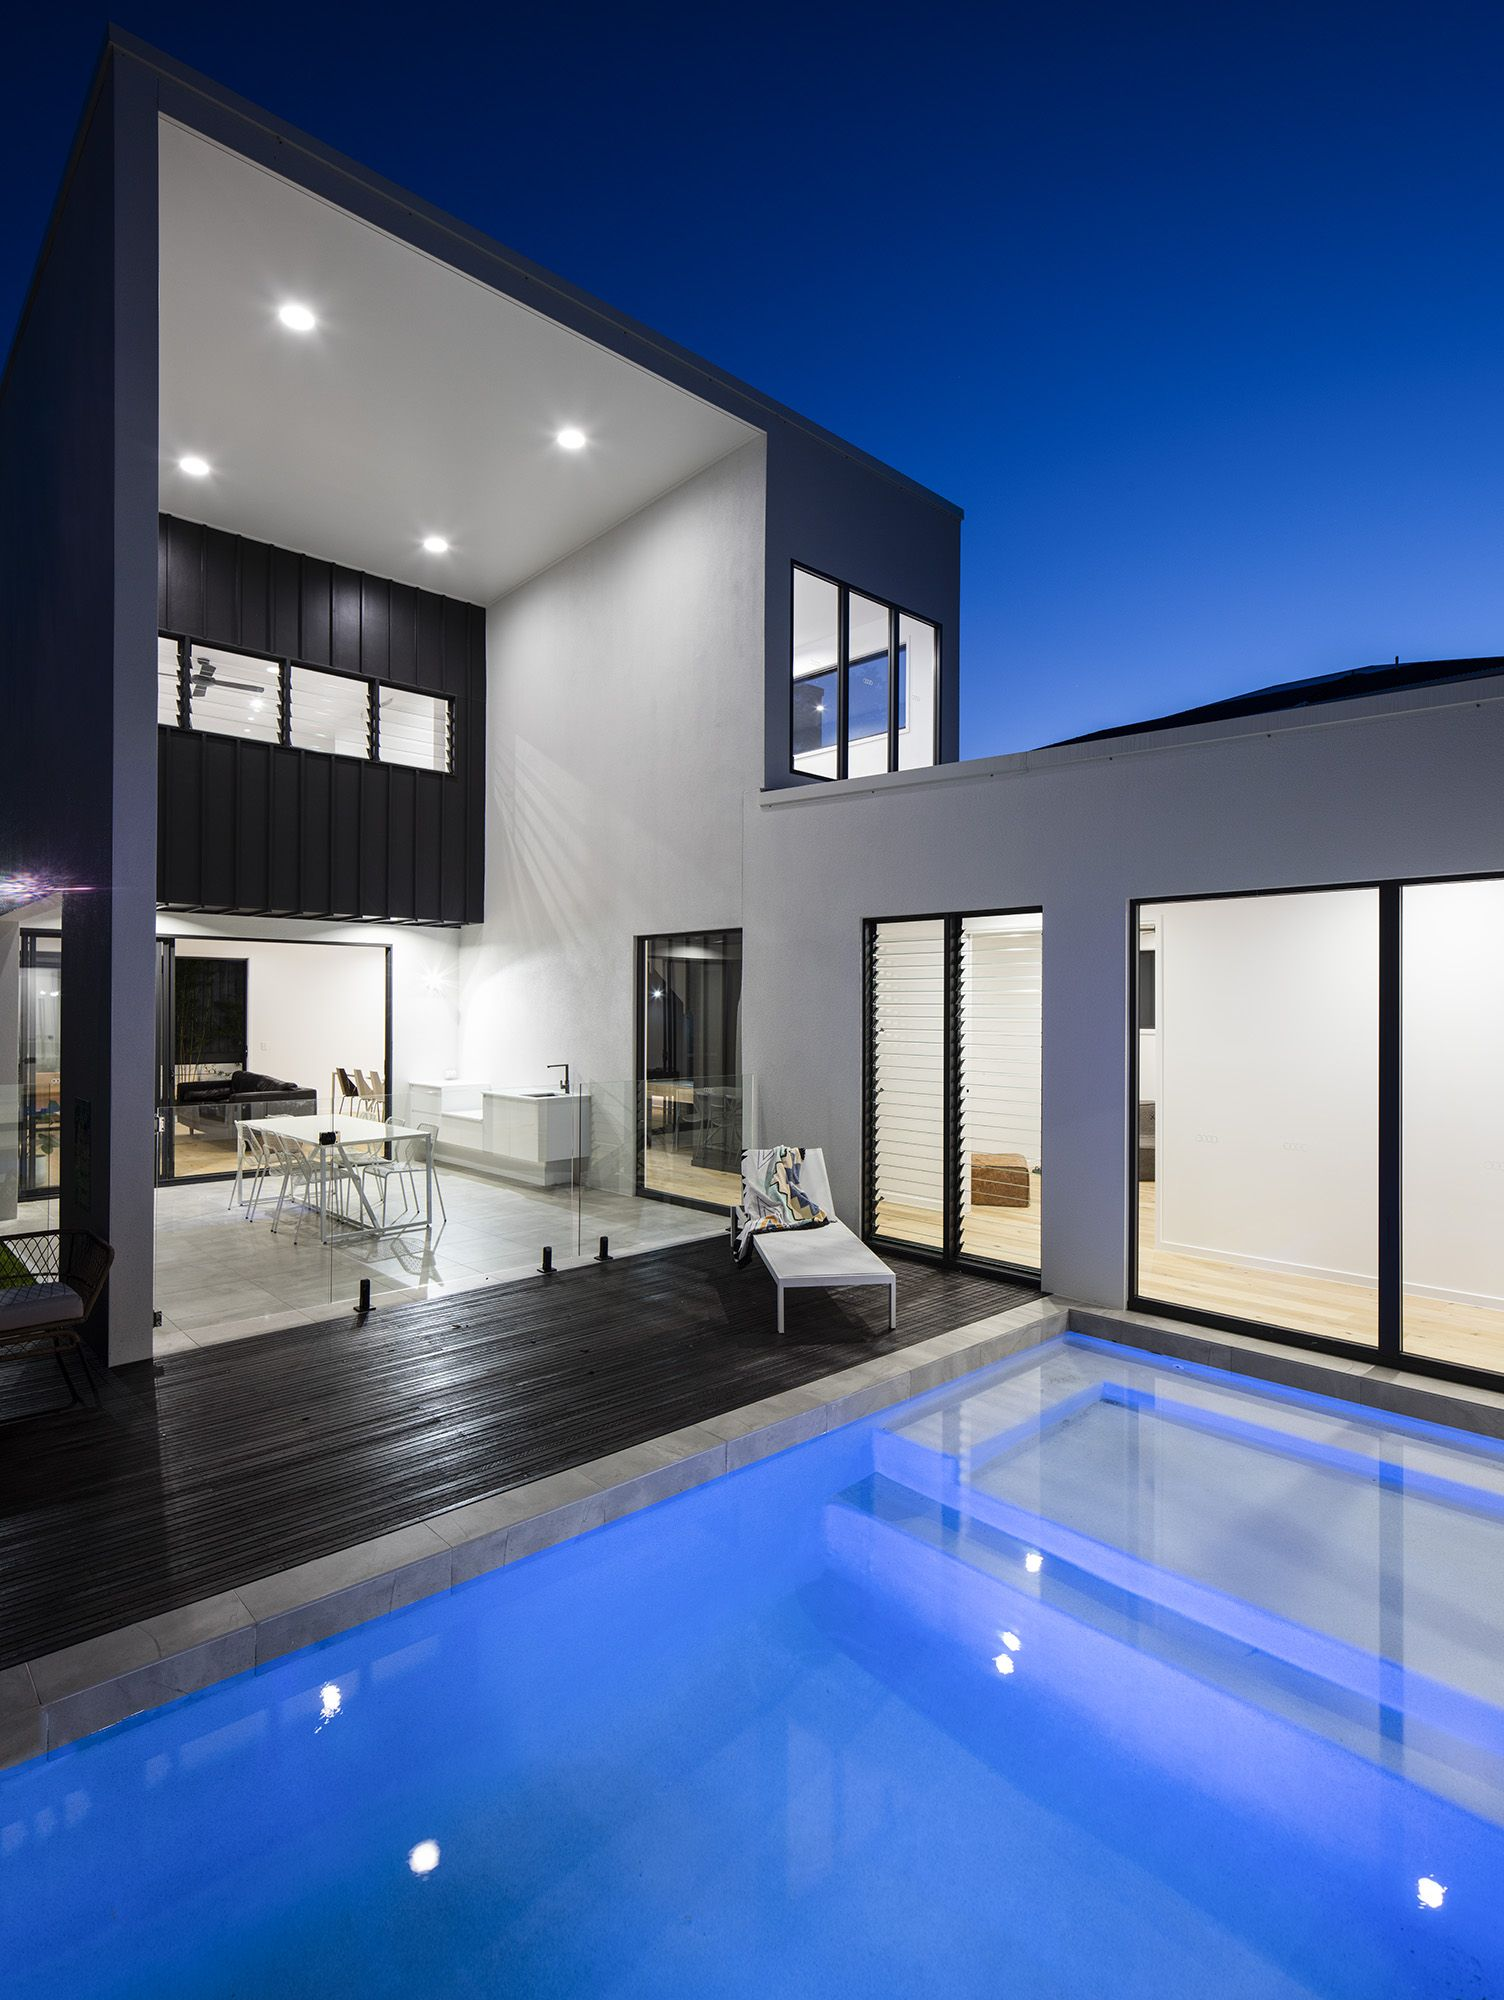 Check out this swimming pool at dusk design by immackulate designer homes the peregian also rh pinterest